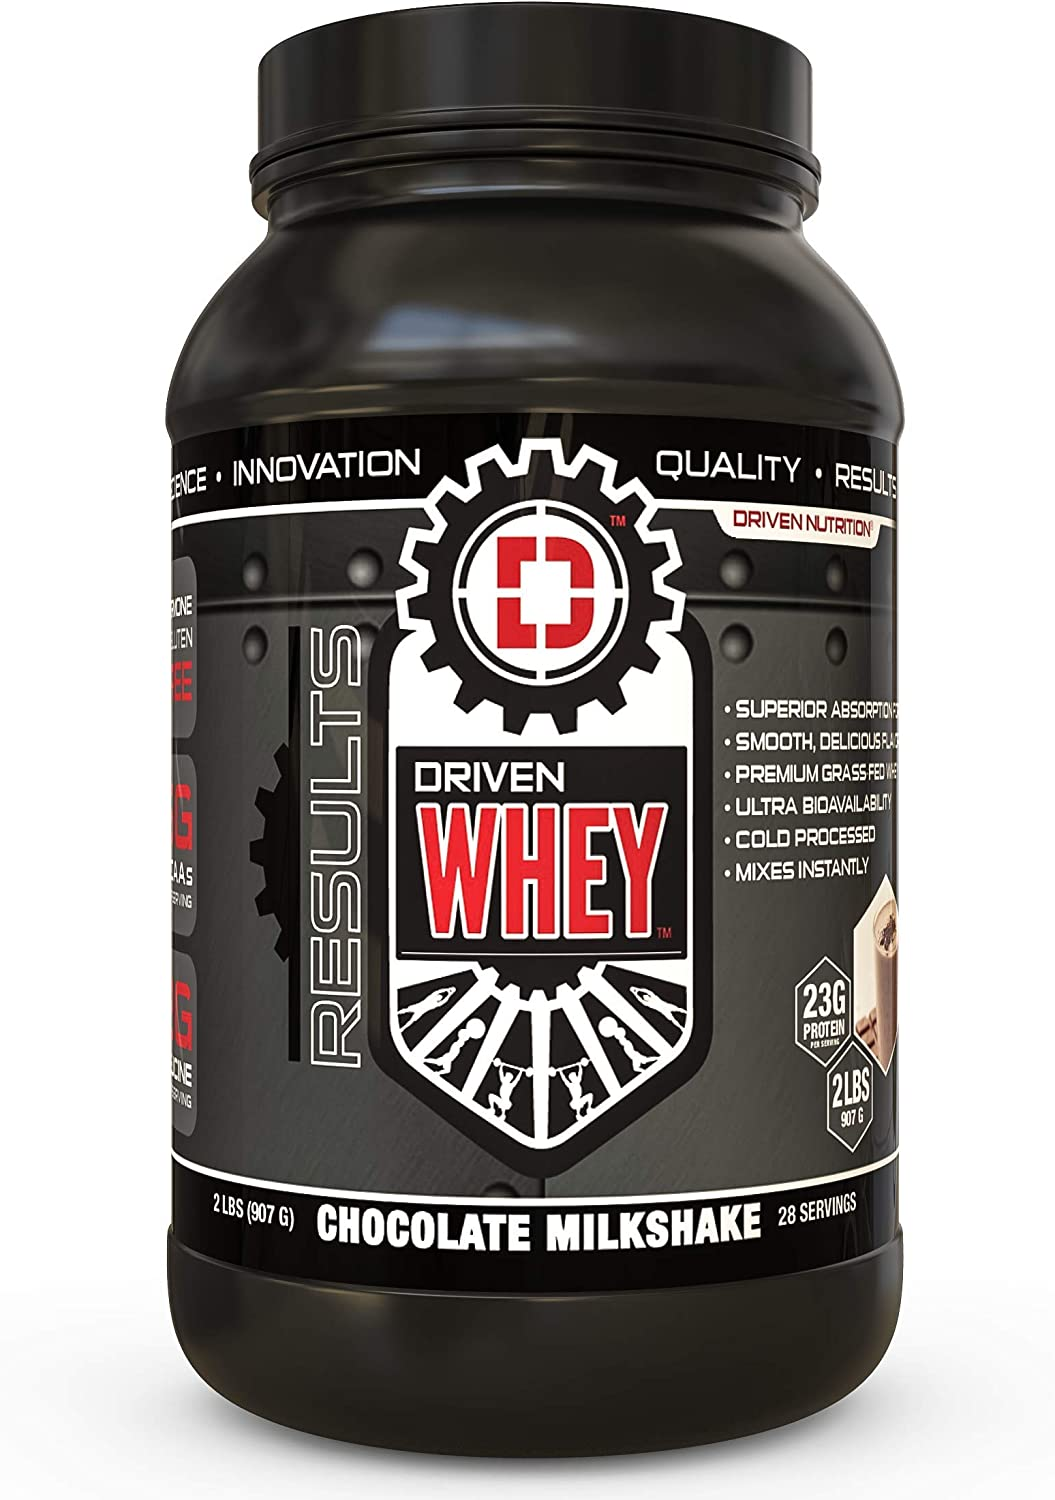 Driven WHEY- Grass Fed Whey Protein Powder Delicious, Clean Protein Shake- Improve Muscle Recovery with 23 Grams of Protein with Added BCAA and Digestive Enzymes Chocolate Milkshake, 2 lb